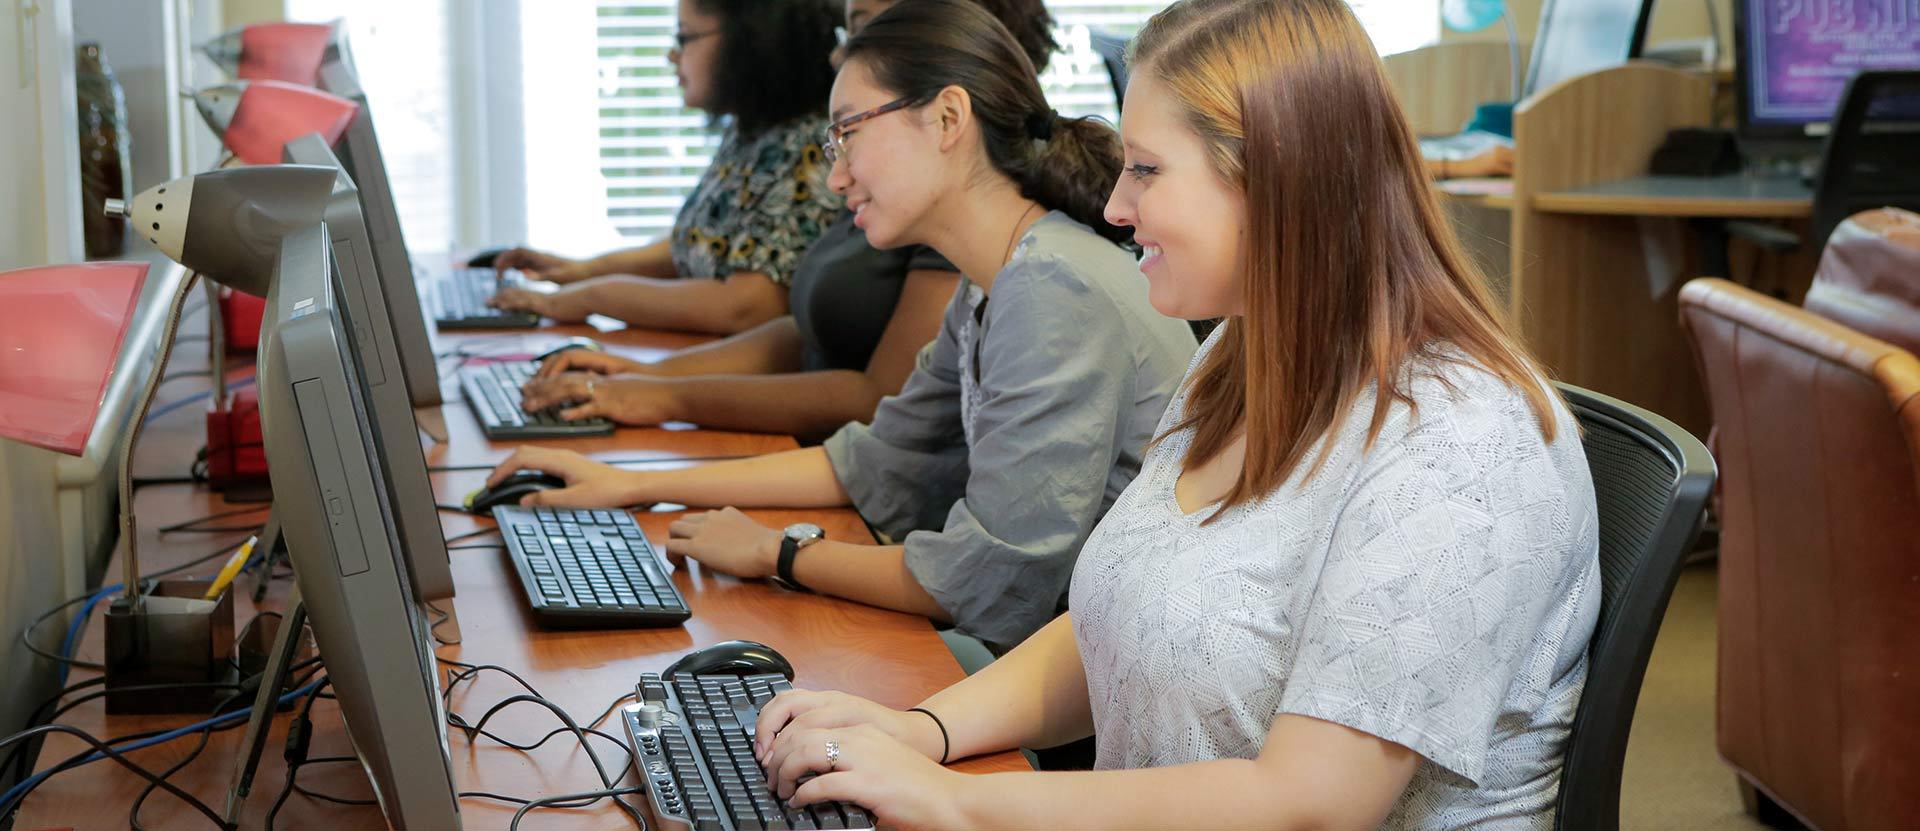 Students in computer lab.